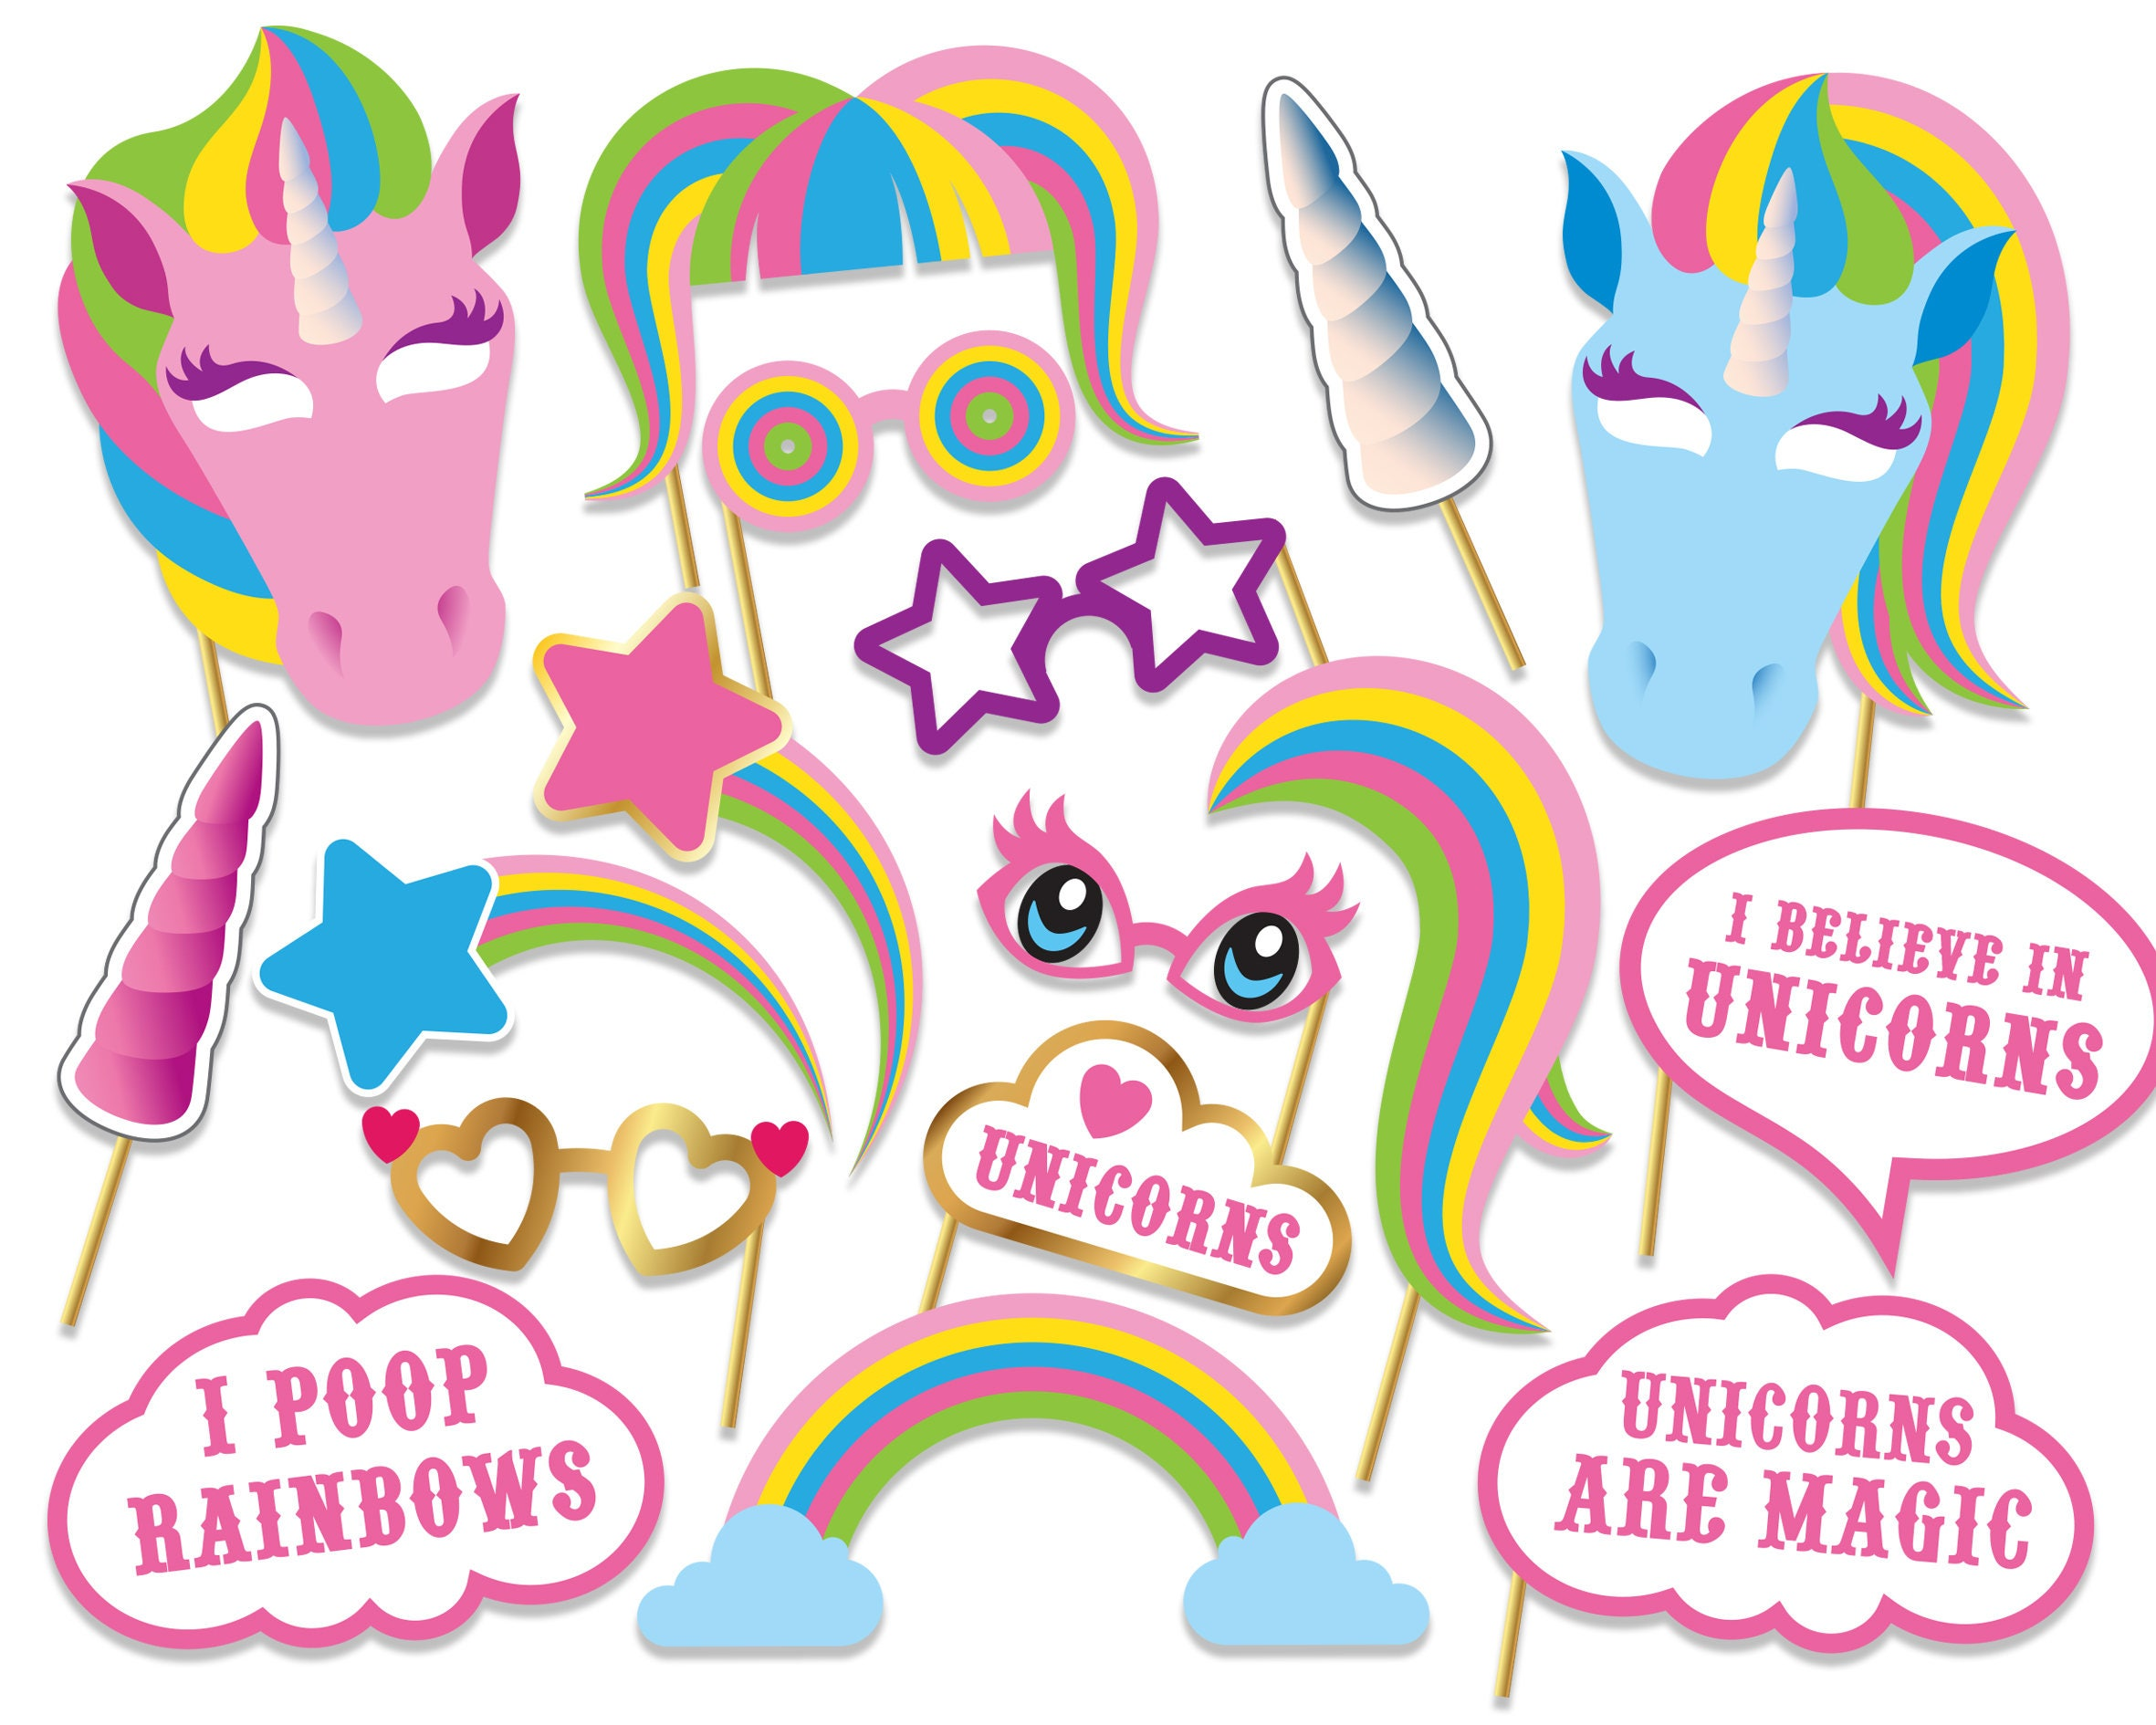 graphic about Printable Photo Booth Props Birthday named Unicorn Picture Booth Props, Birthday Picture Booth, Unicorn